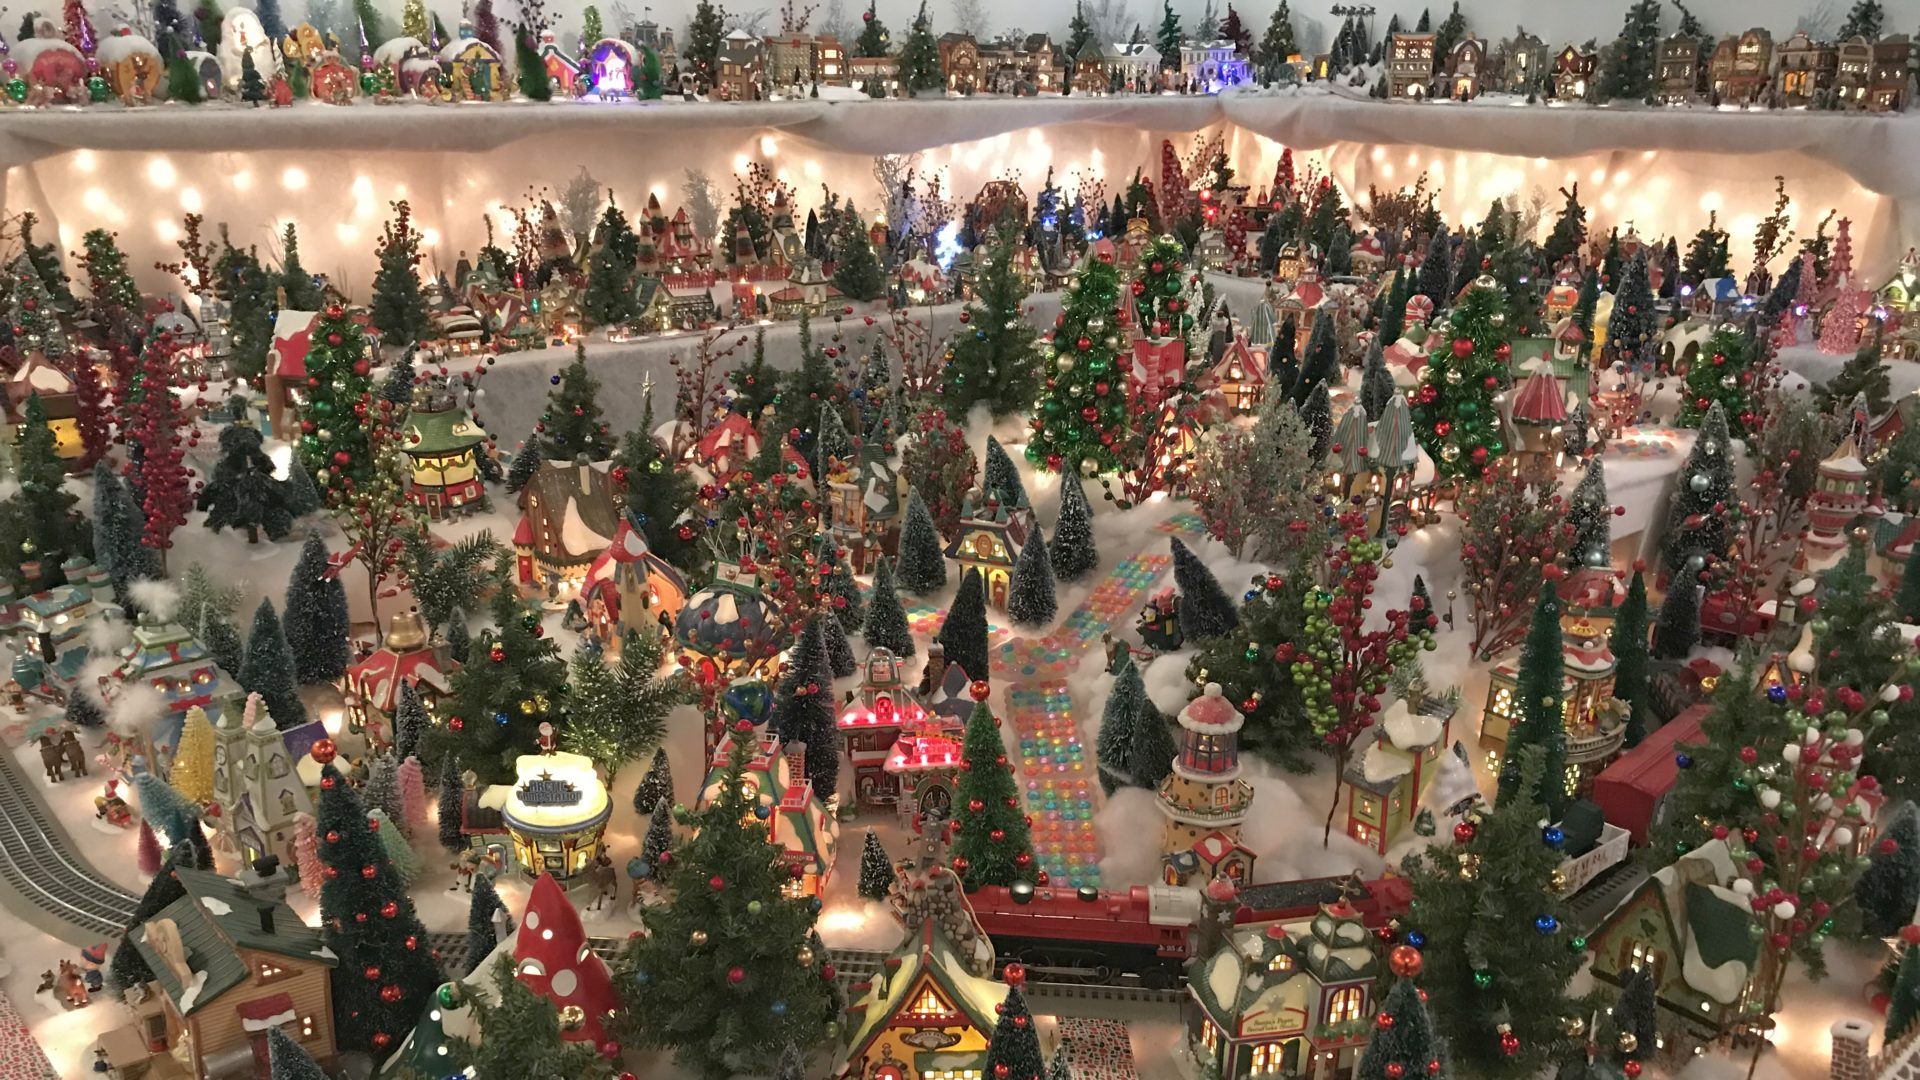 Wayne S Christmas Village Your Home For Holiday Merriment